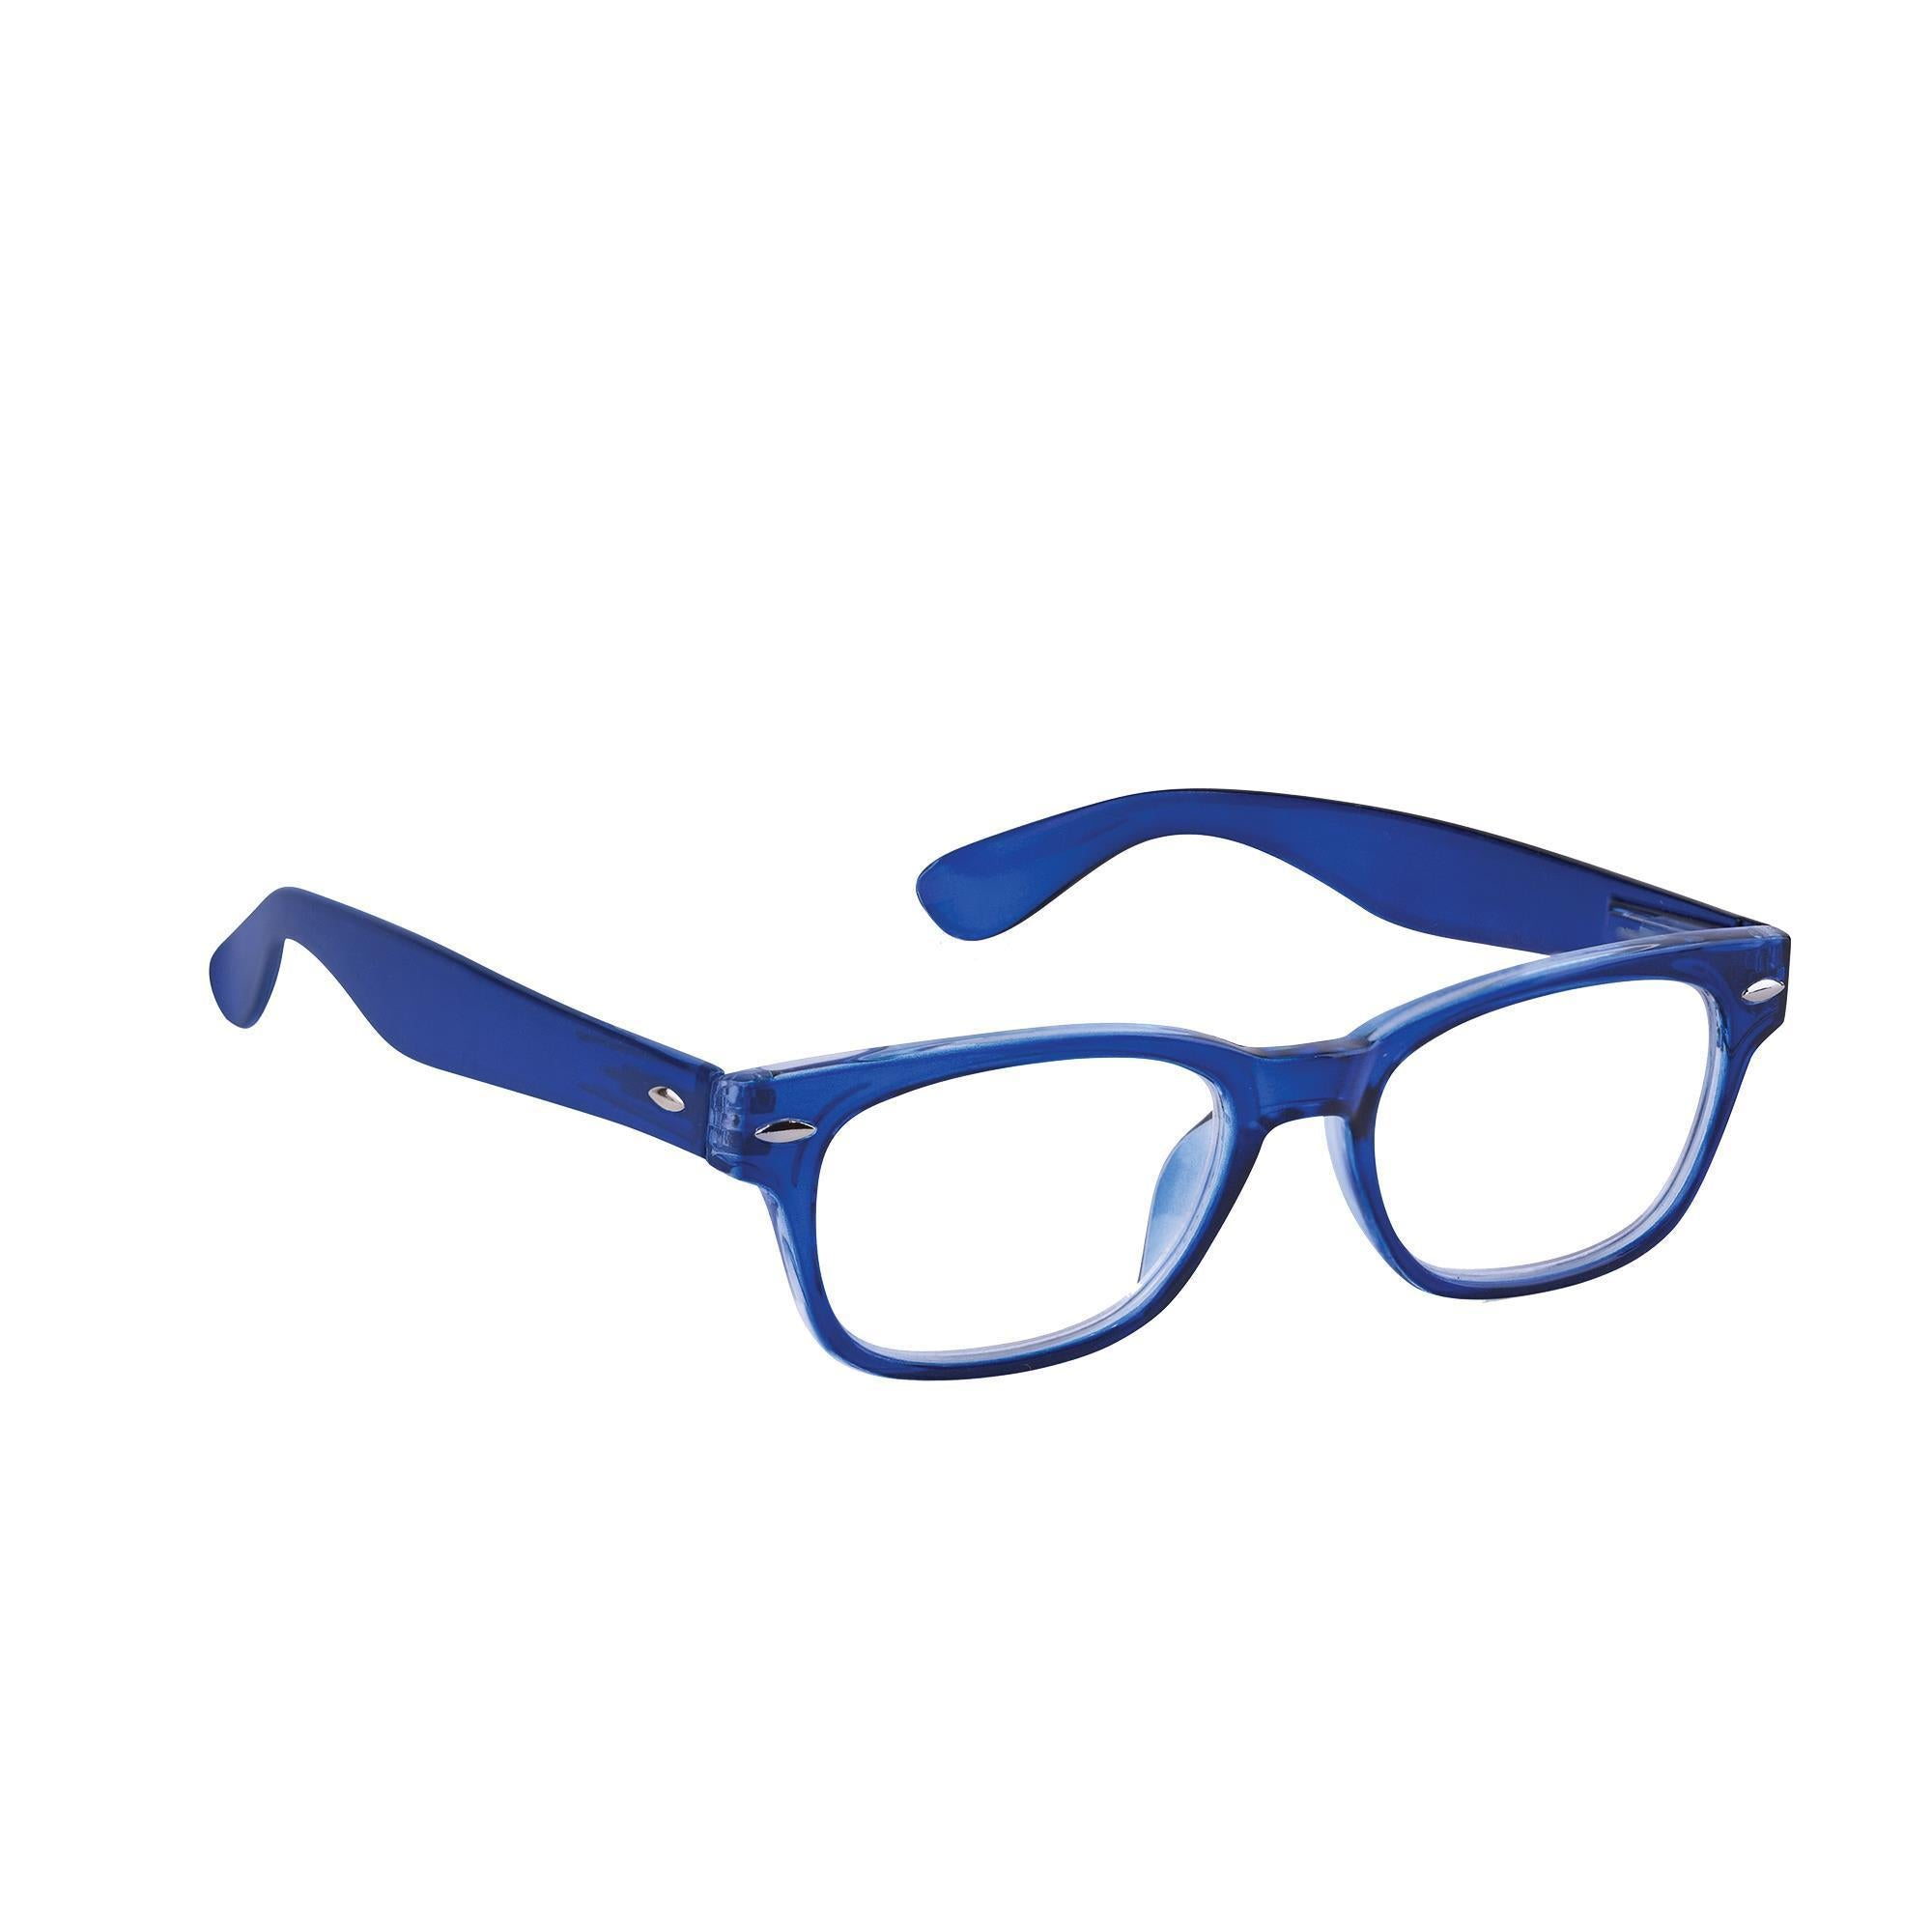 Accessories 1 Peepers Simply Blue